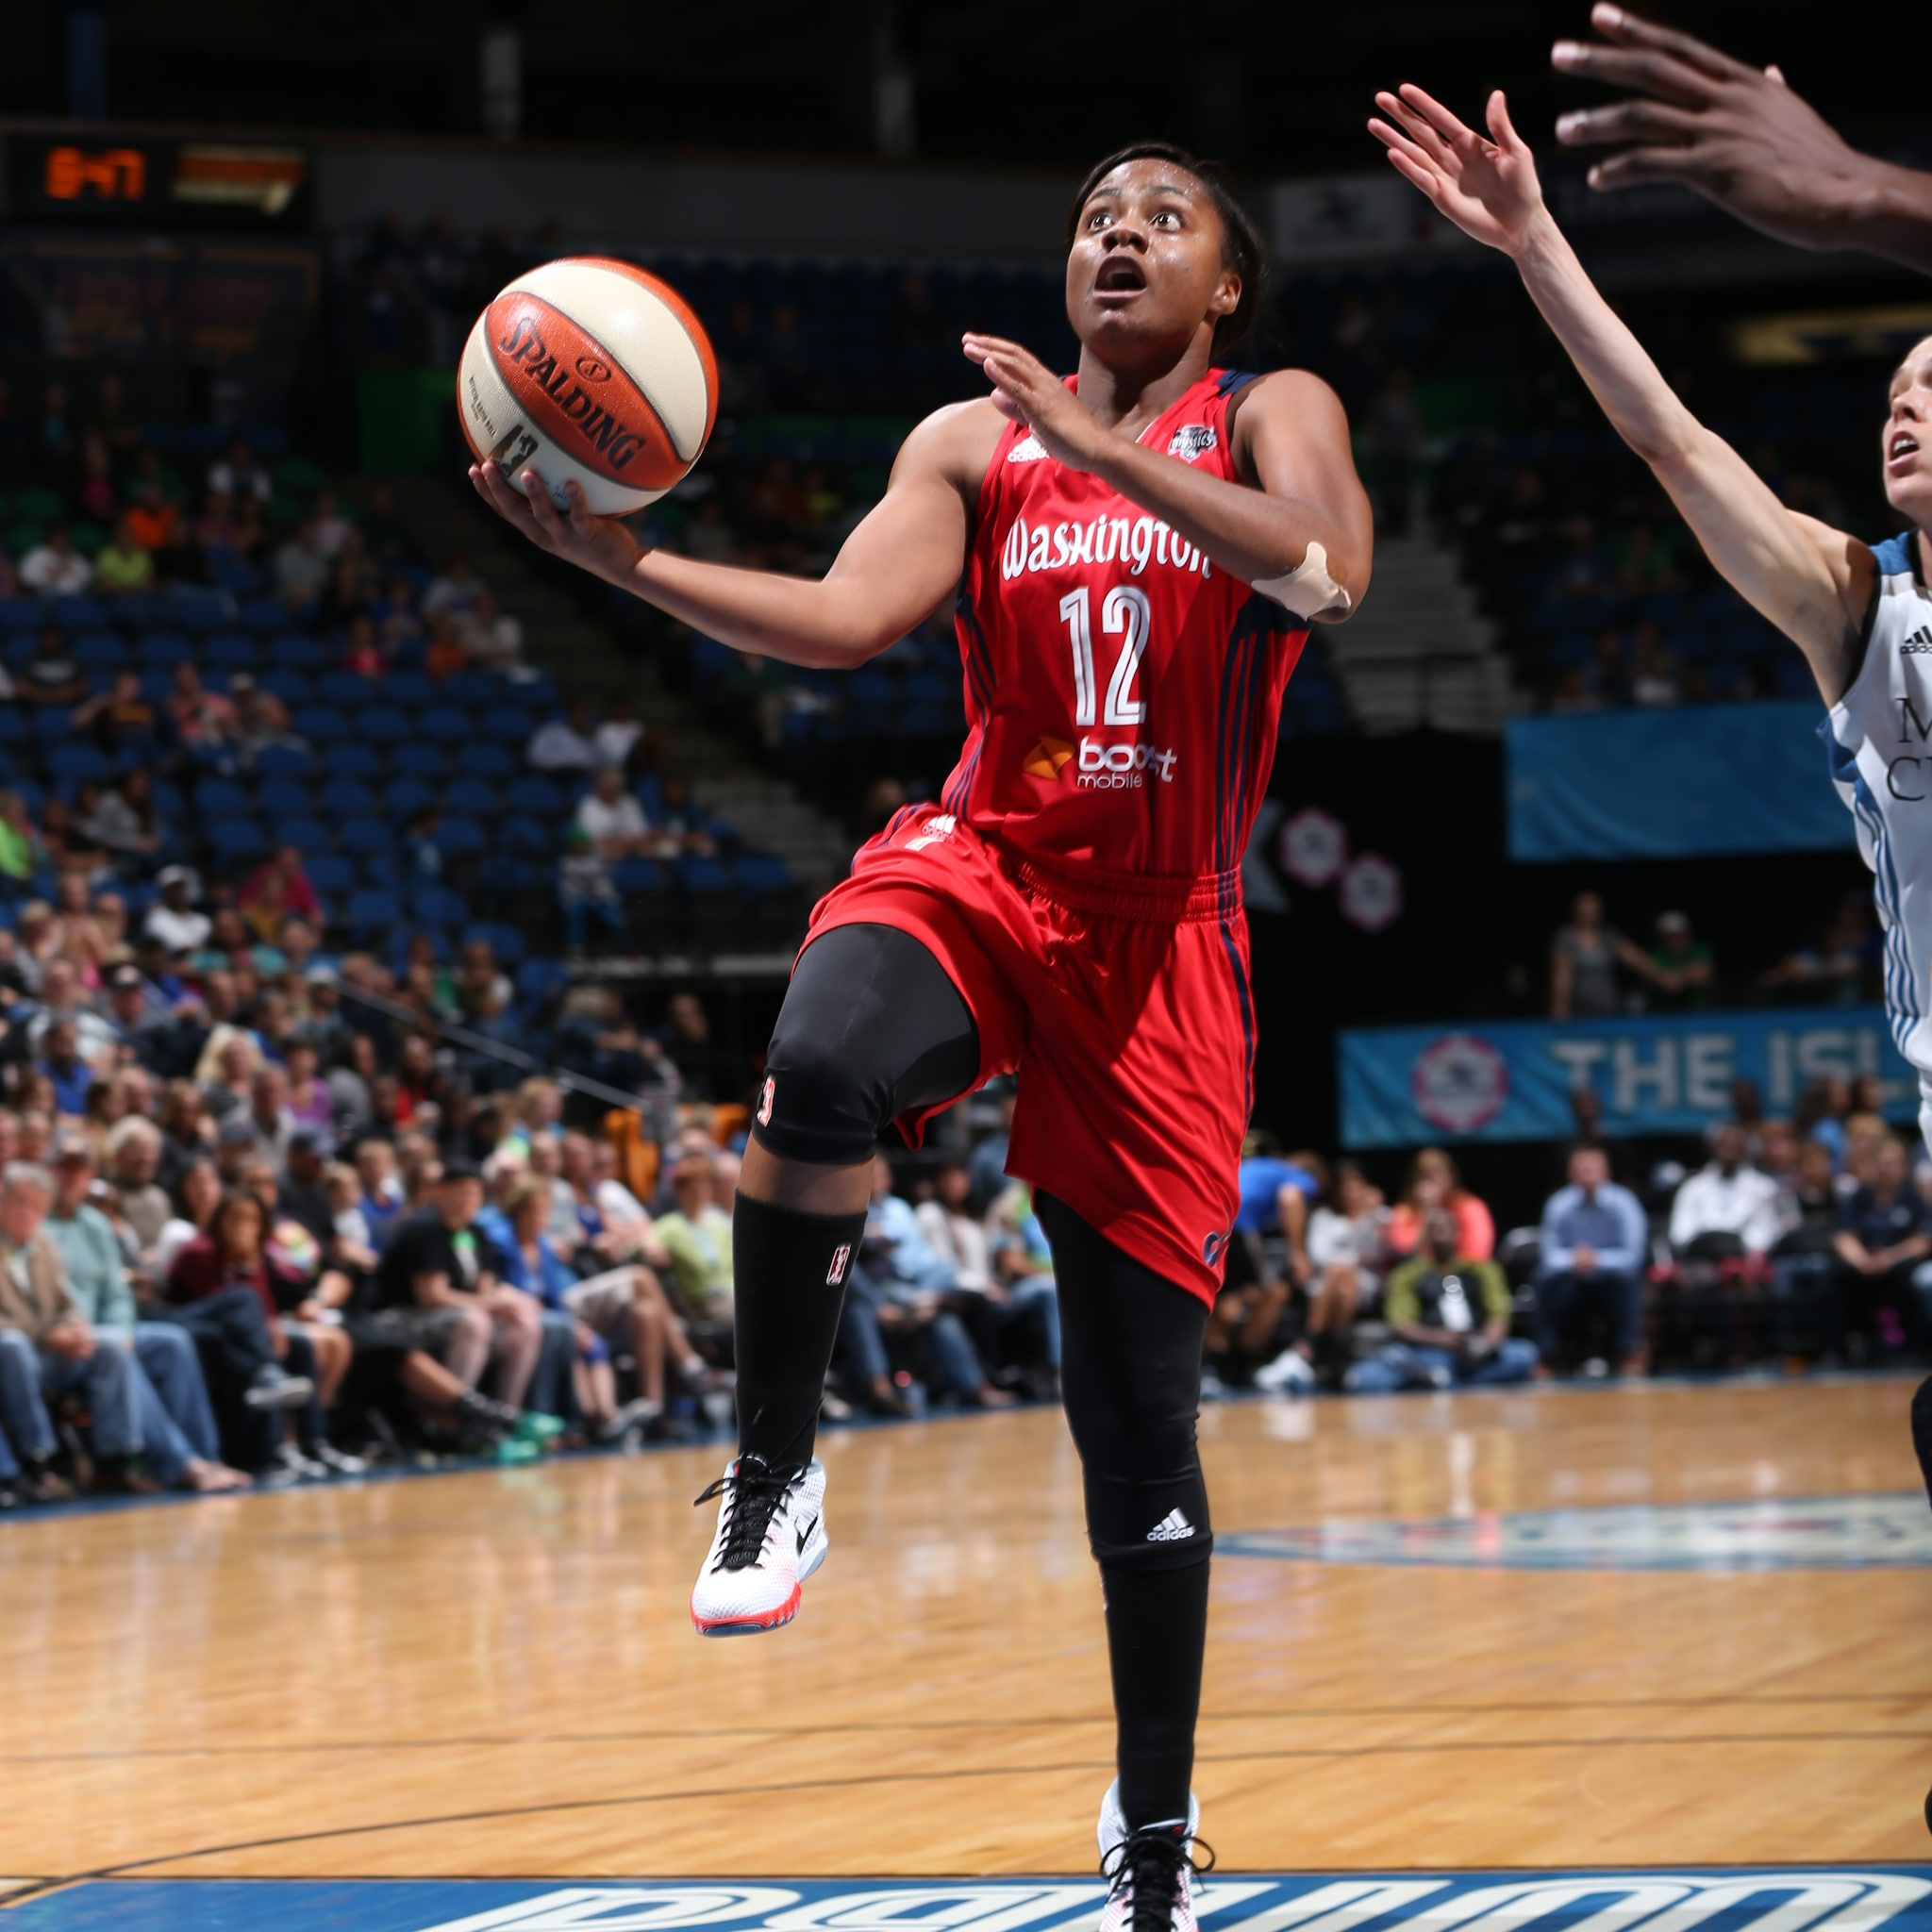 Mystics guard Ivory Latta caused problems for the Lynx defense once again, finishing with 16 points, three rebounds and four assists in Washington's victory.